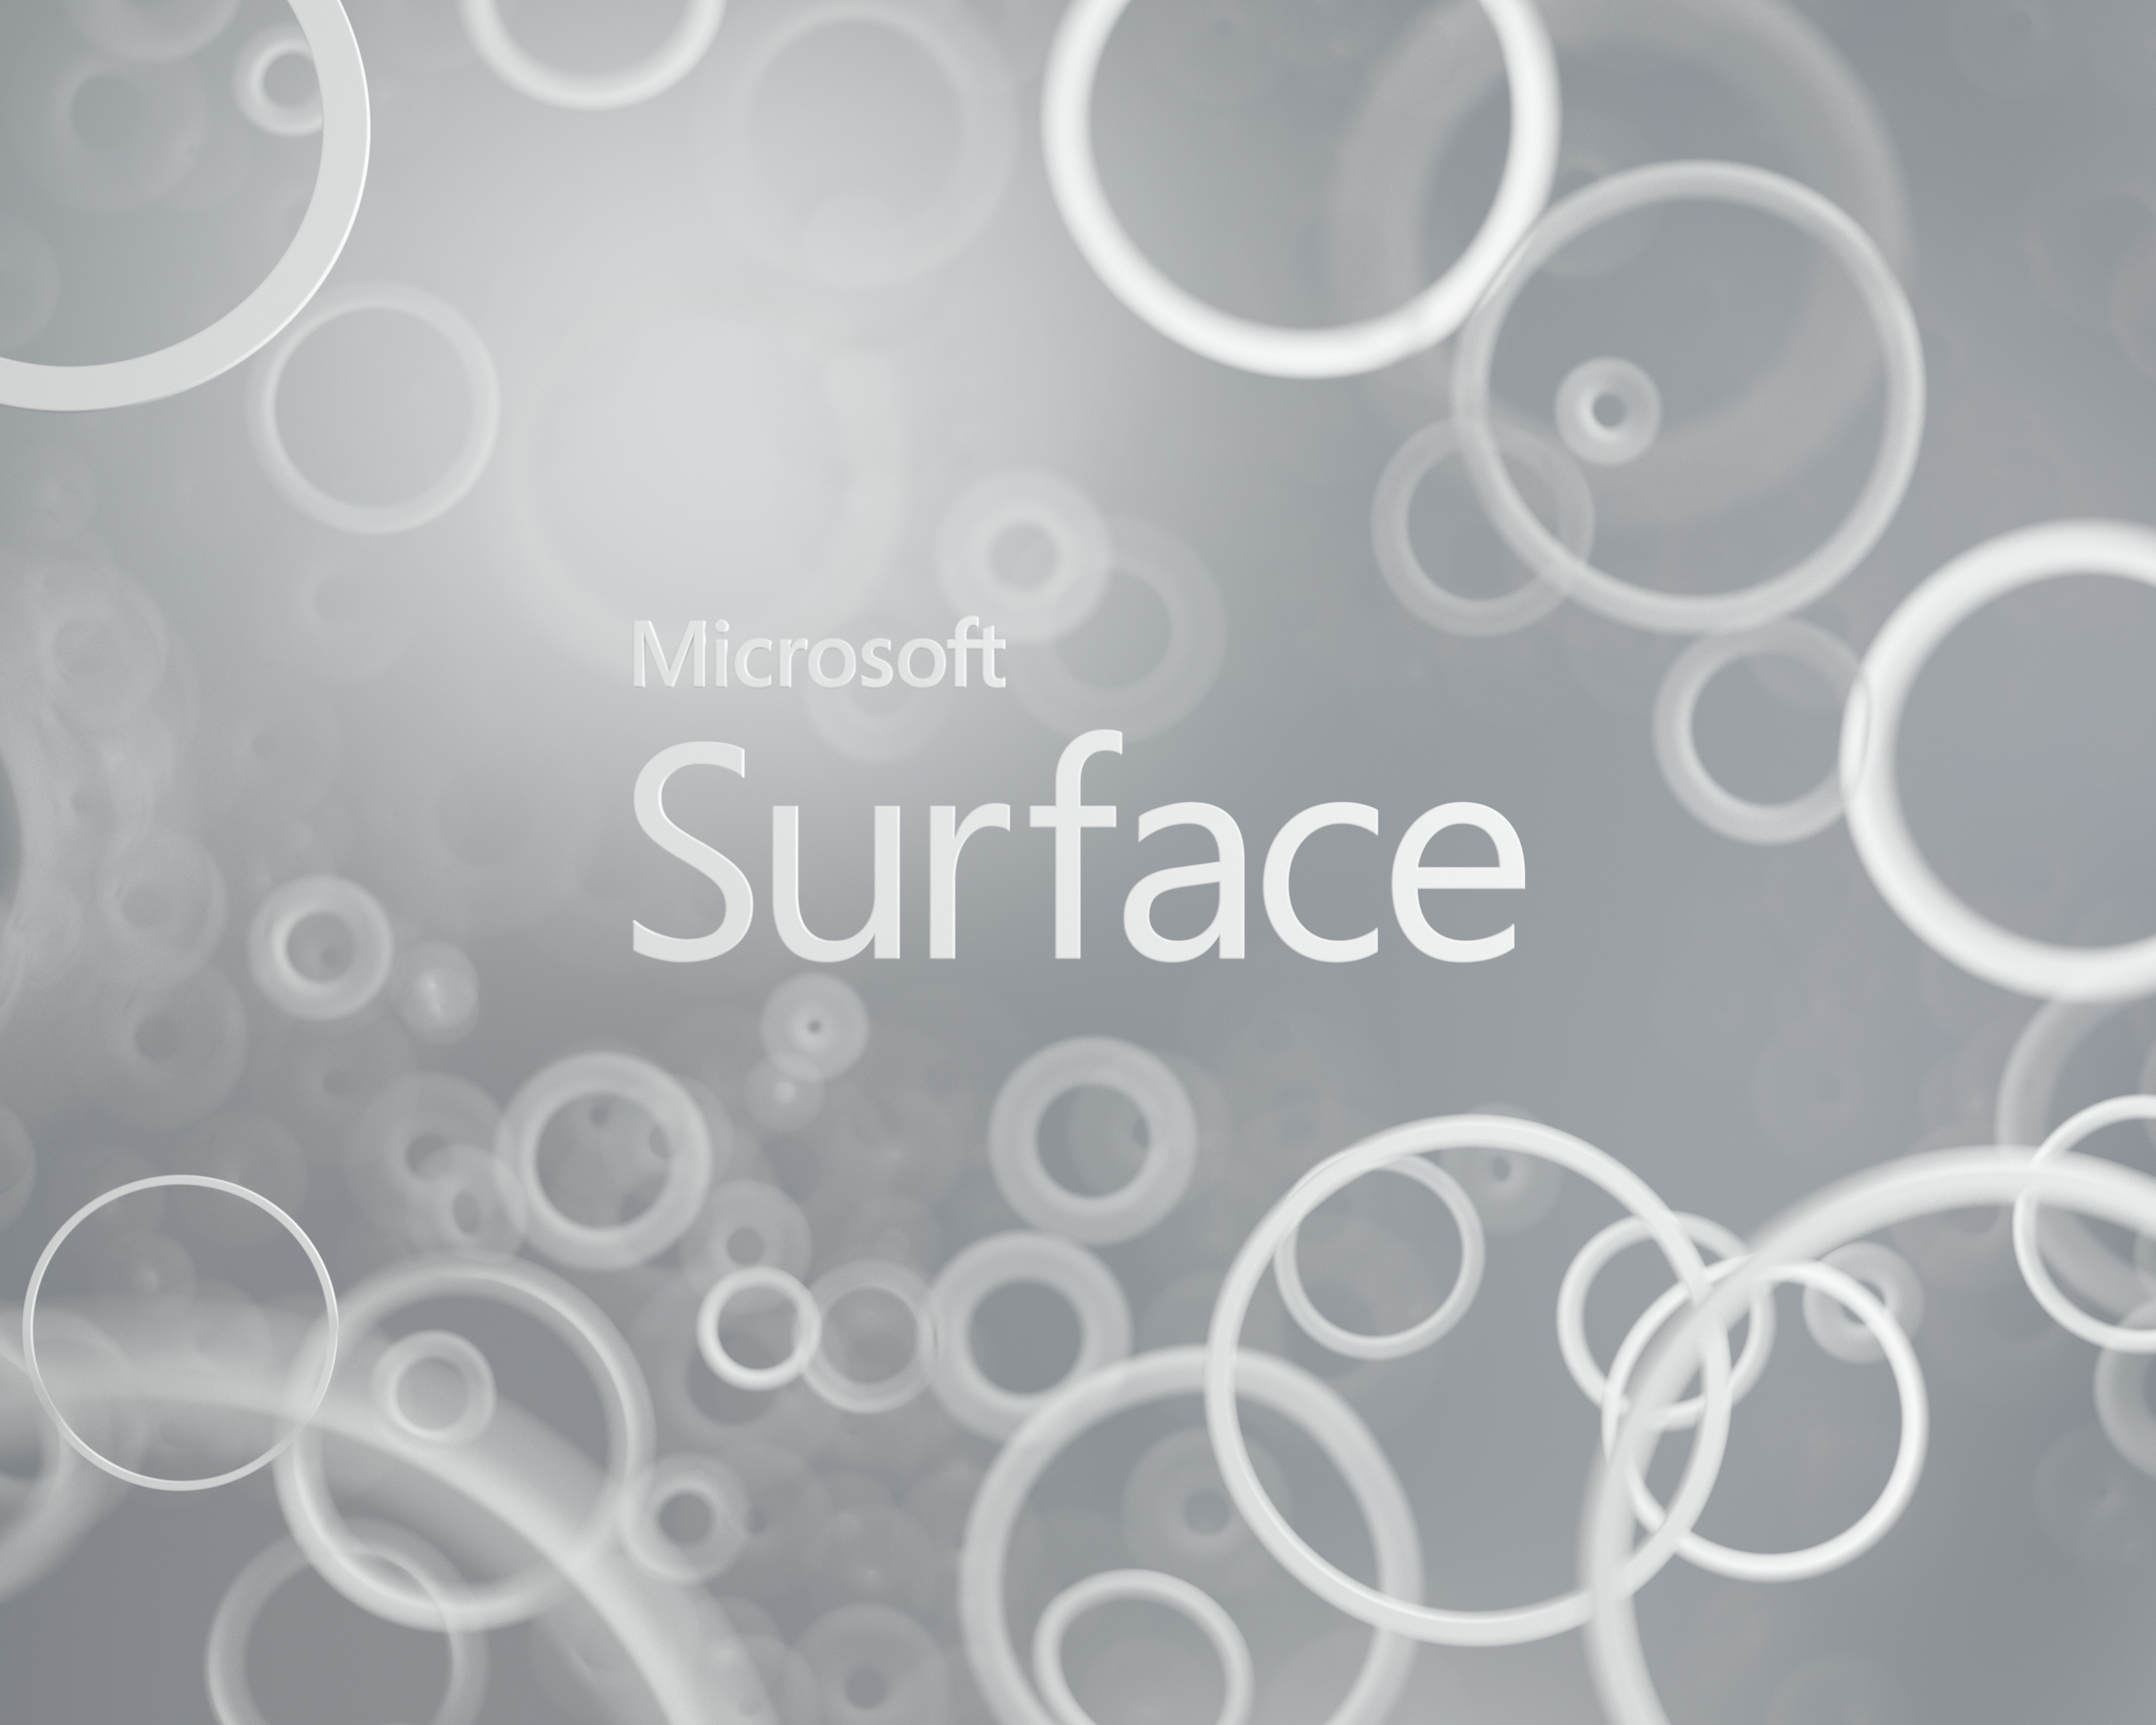 microsoft surface wallpapers abstract - photo #32